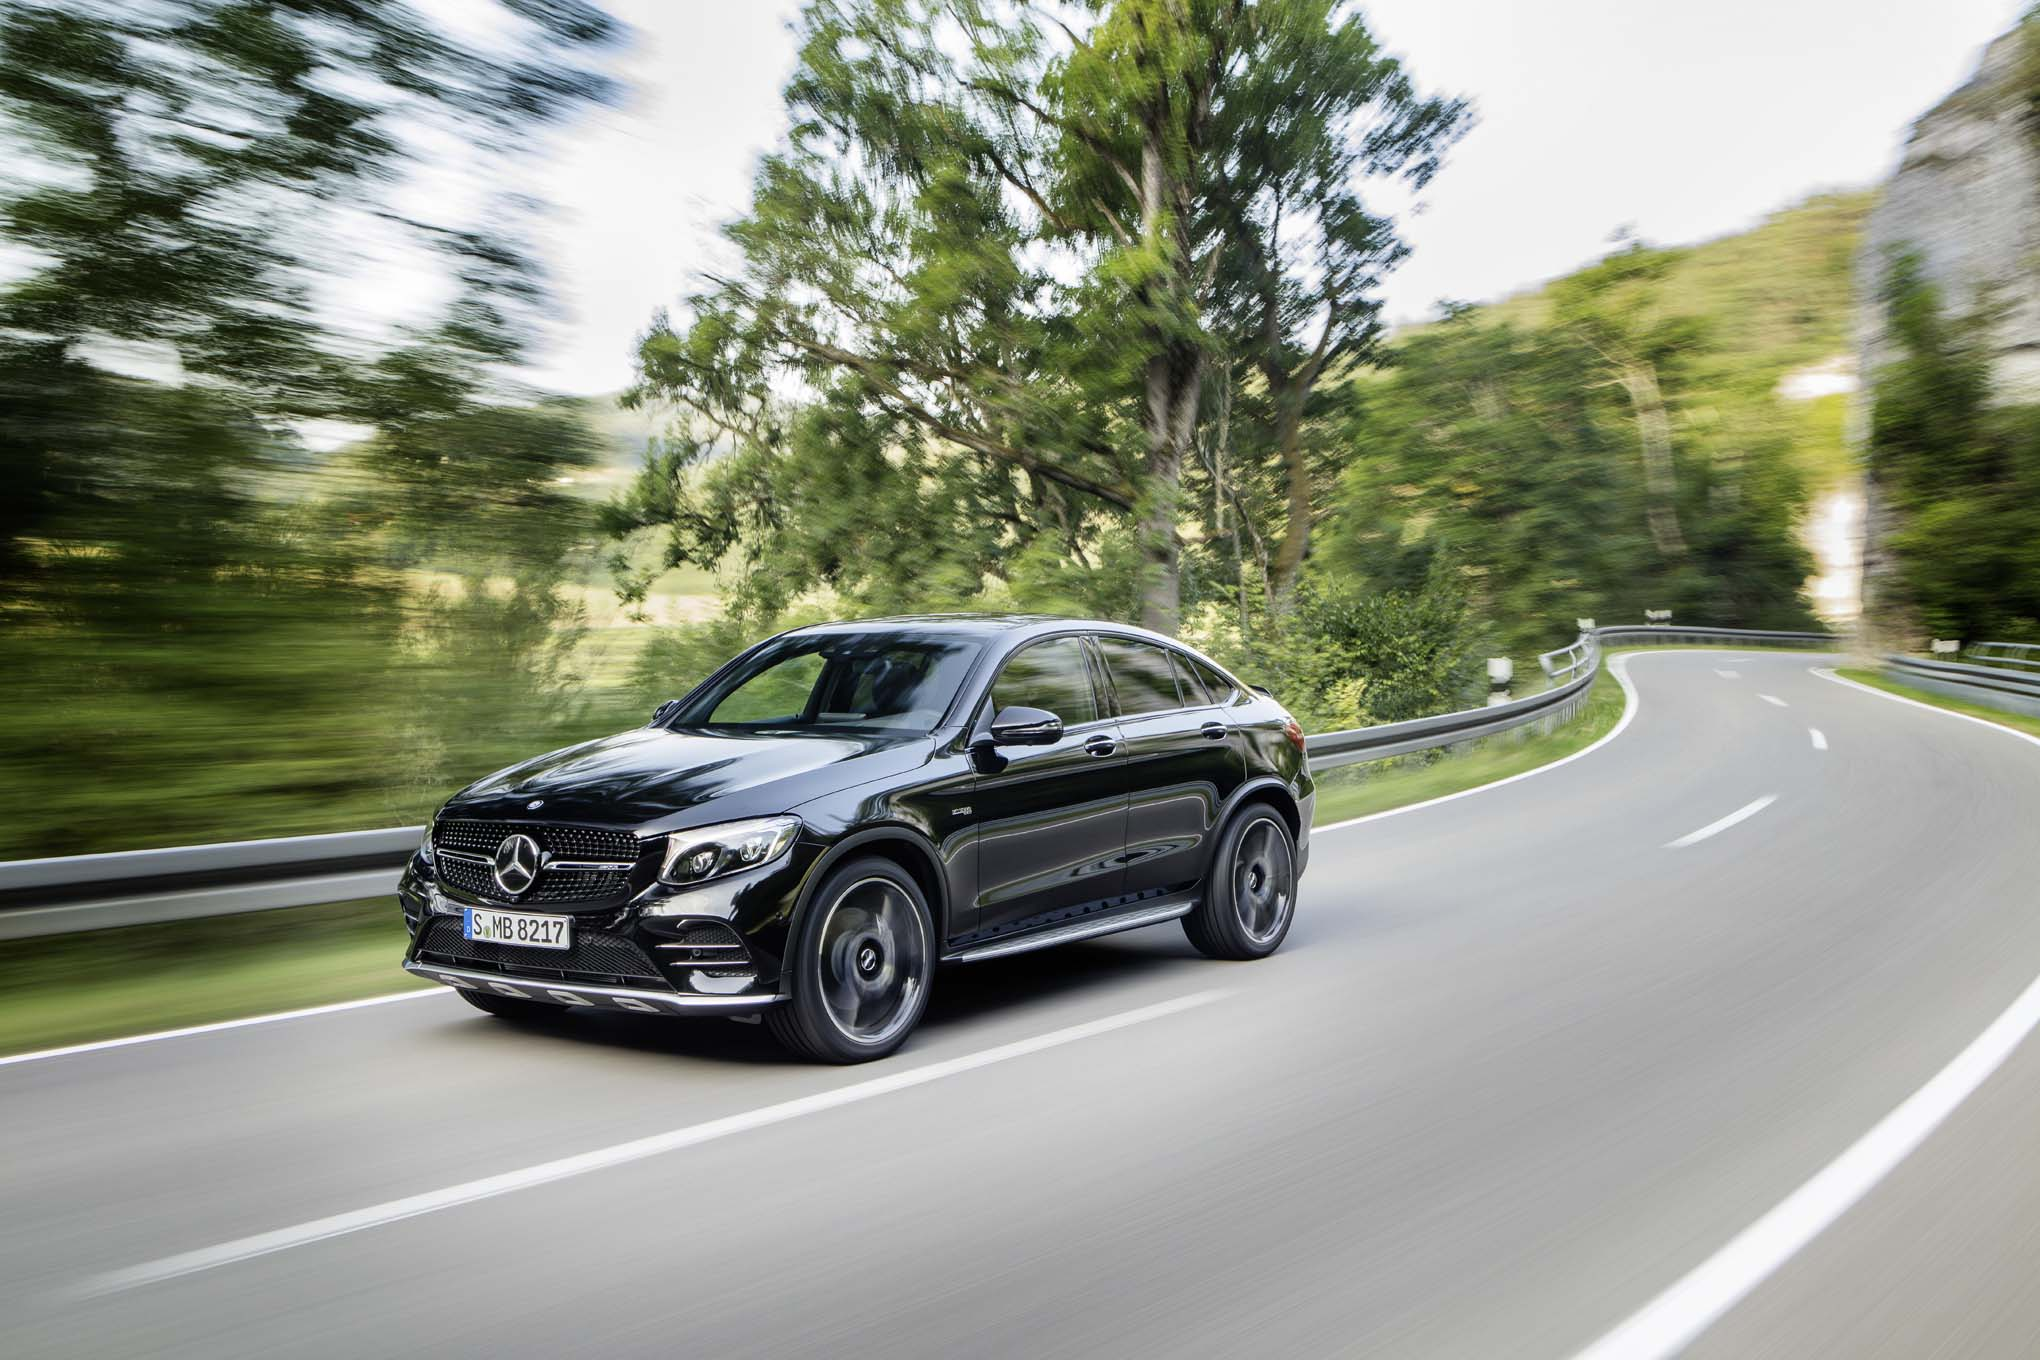 http://st.automobilemag.com/uploads/sites/11/2016/08/2017-Mercedes-AMG-GLC43-coupe-front-three-quarters-in-motion.jpg